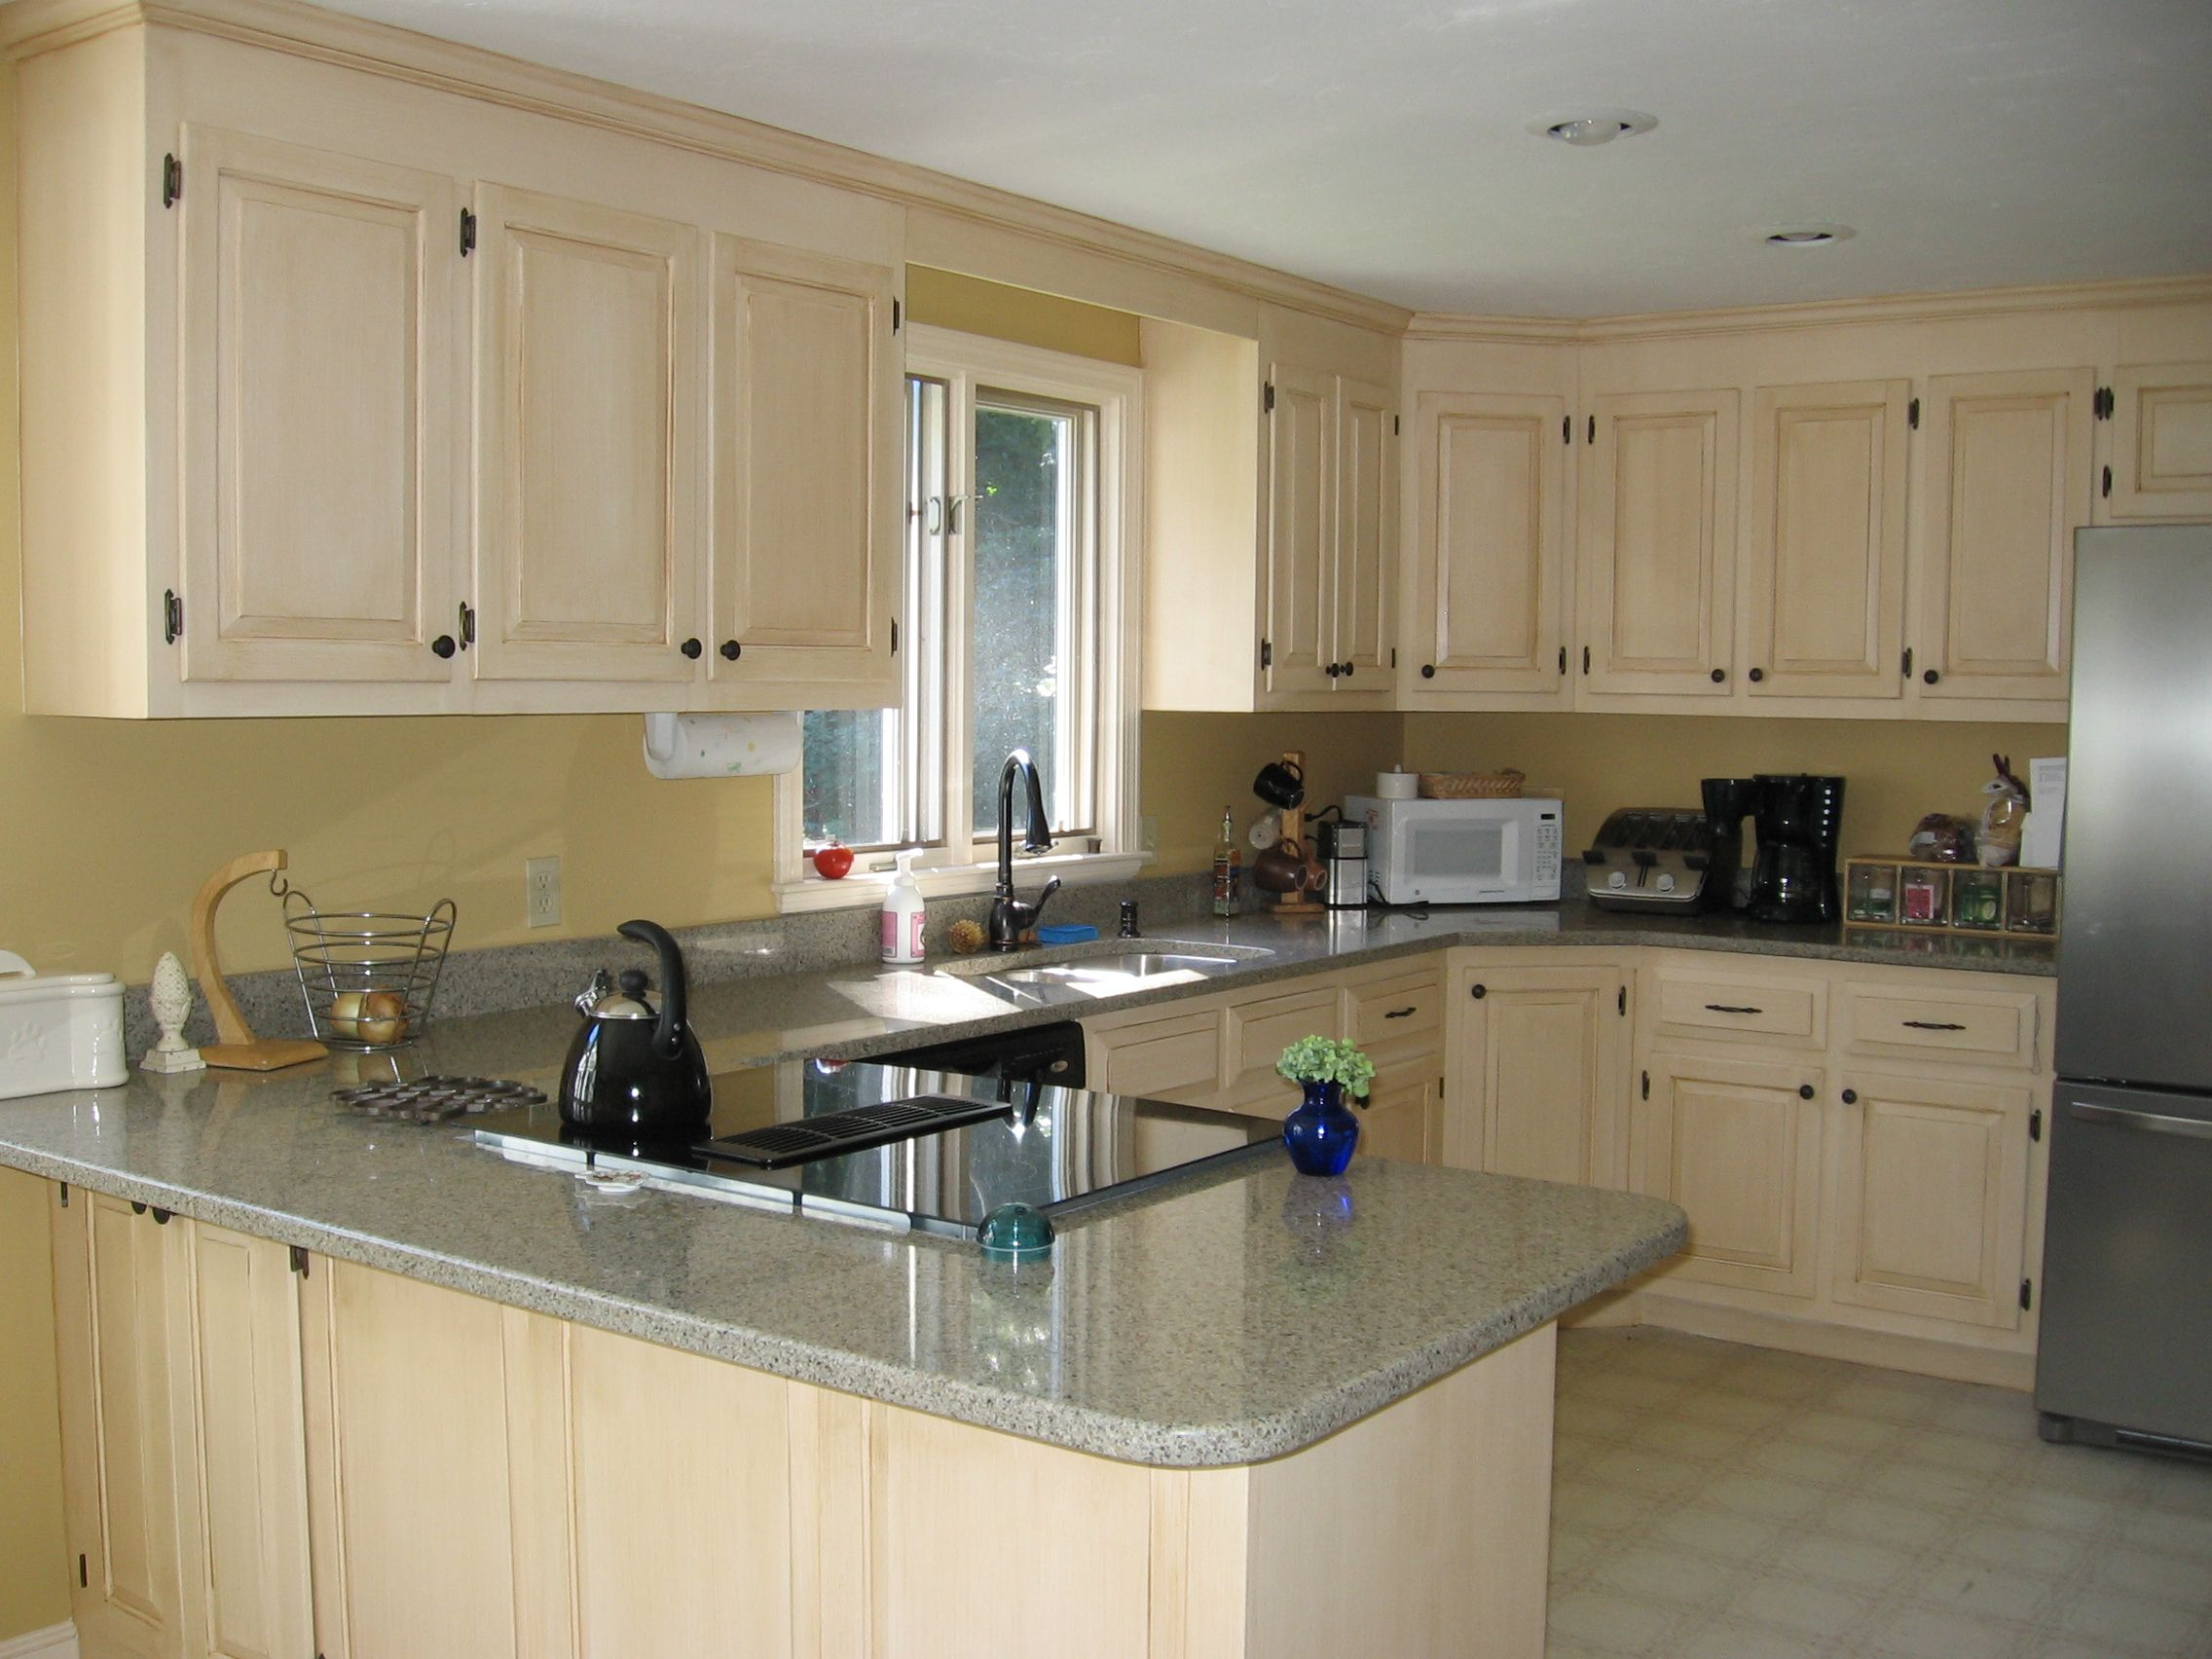 Images Of Painted Kitchen Cabinets Painting Kitchen Cabinet